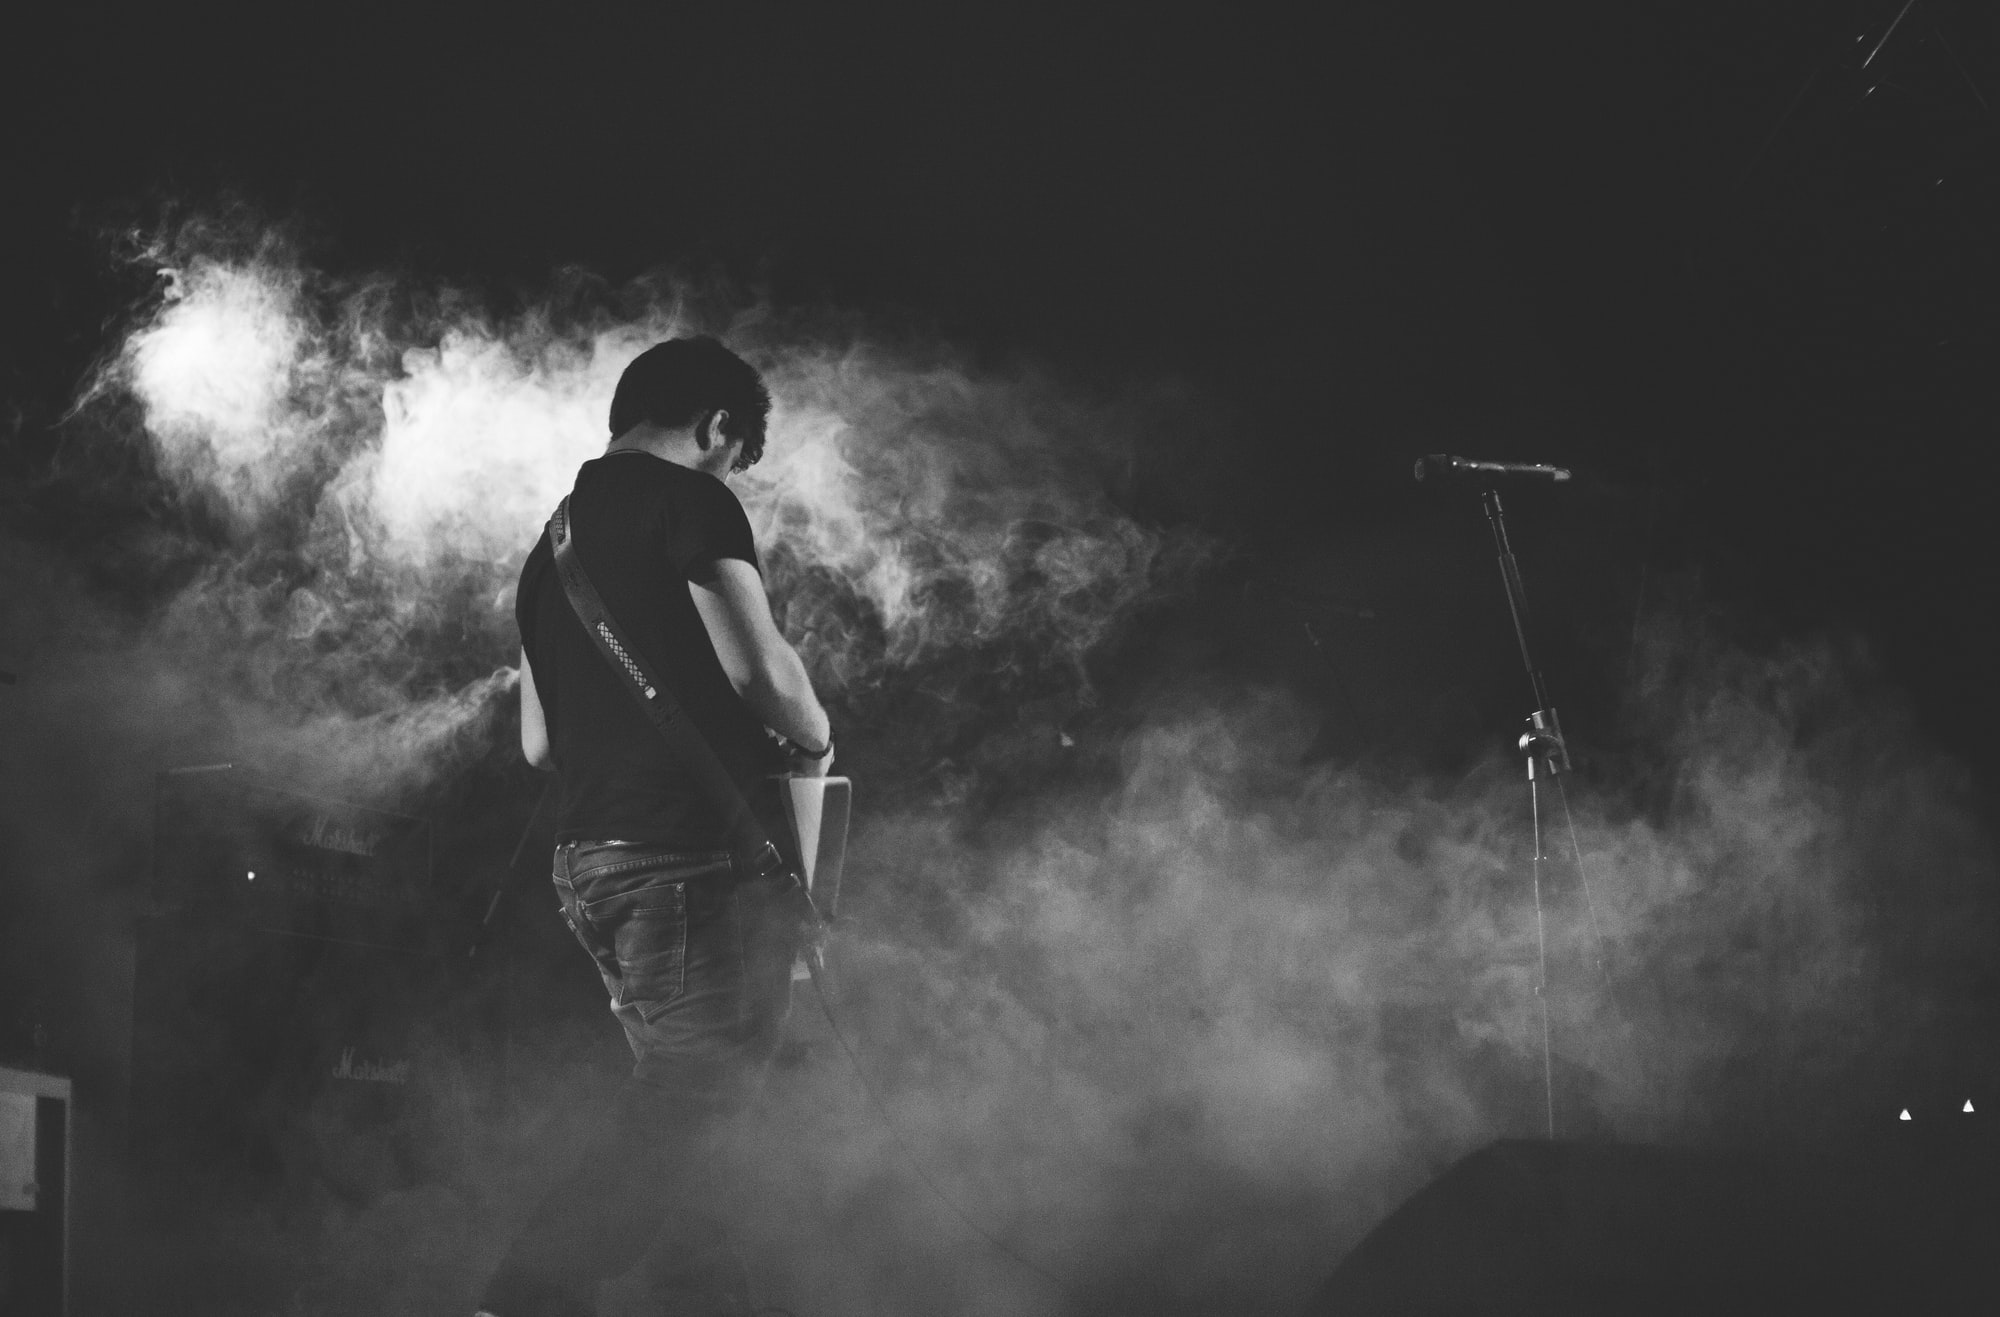 A black-and-white shot of a male musician with a guitar in smoke on stage